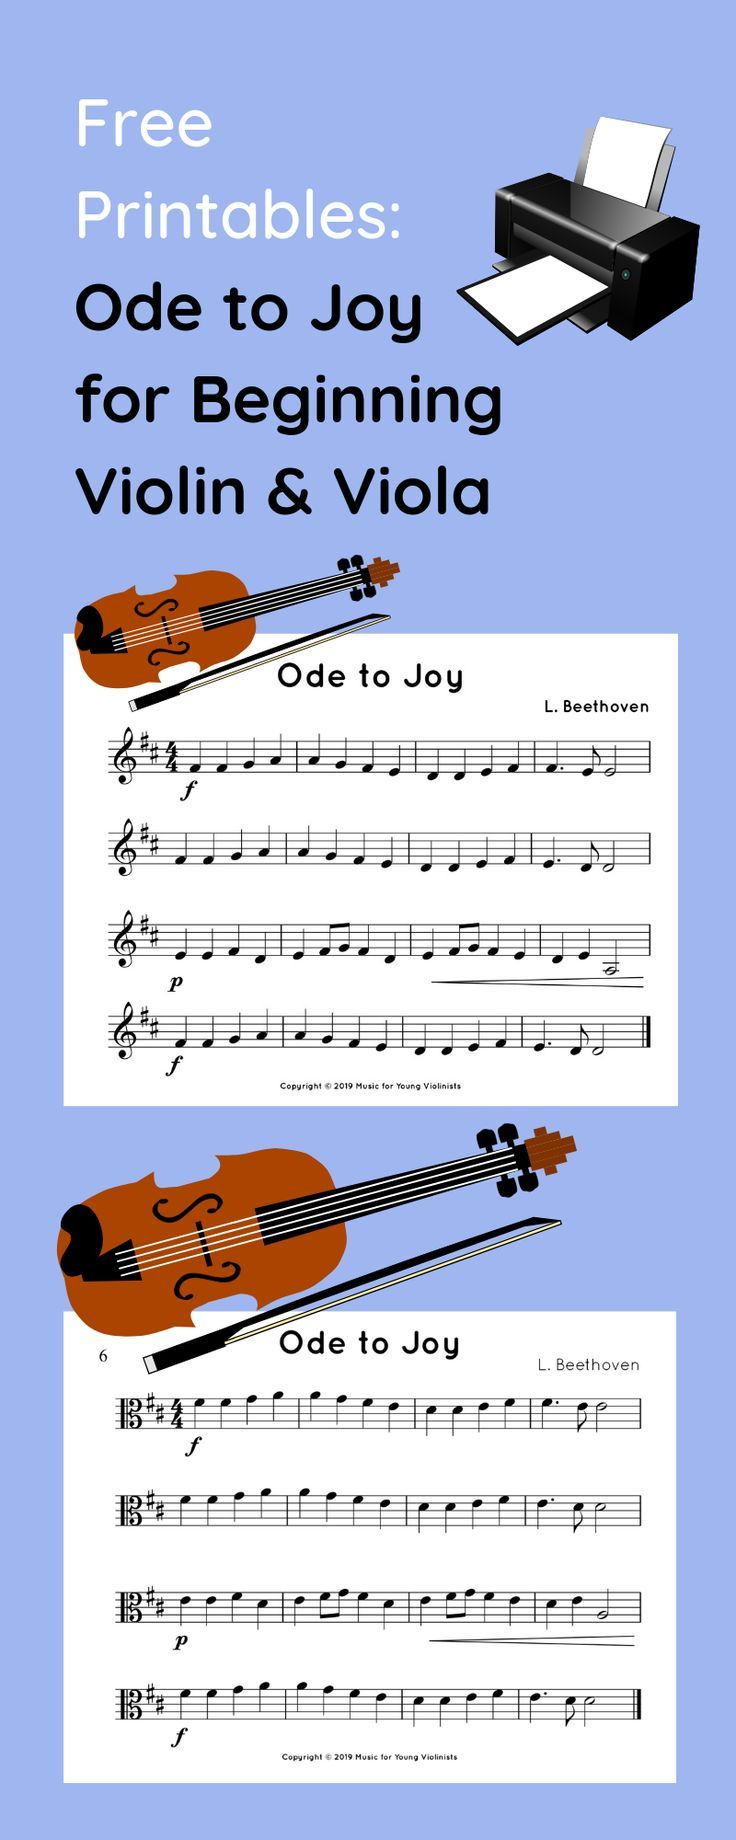 Download the sheet music to Ode to Joy for both beginning